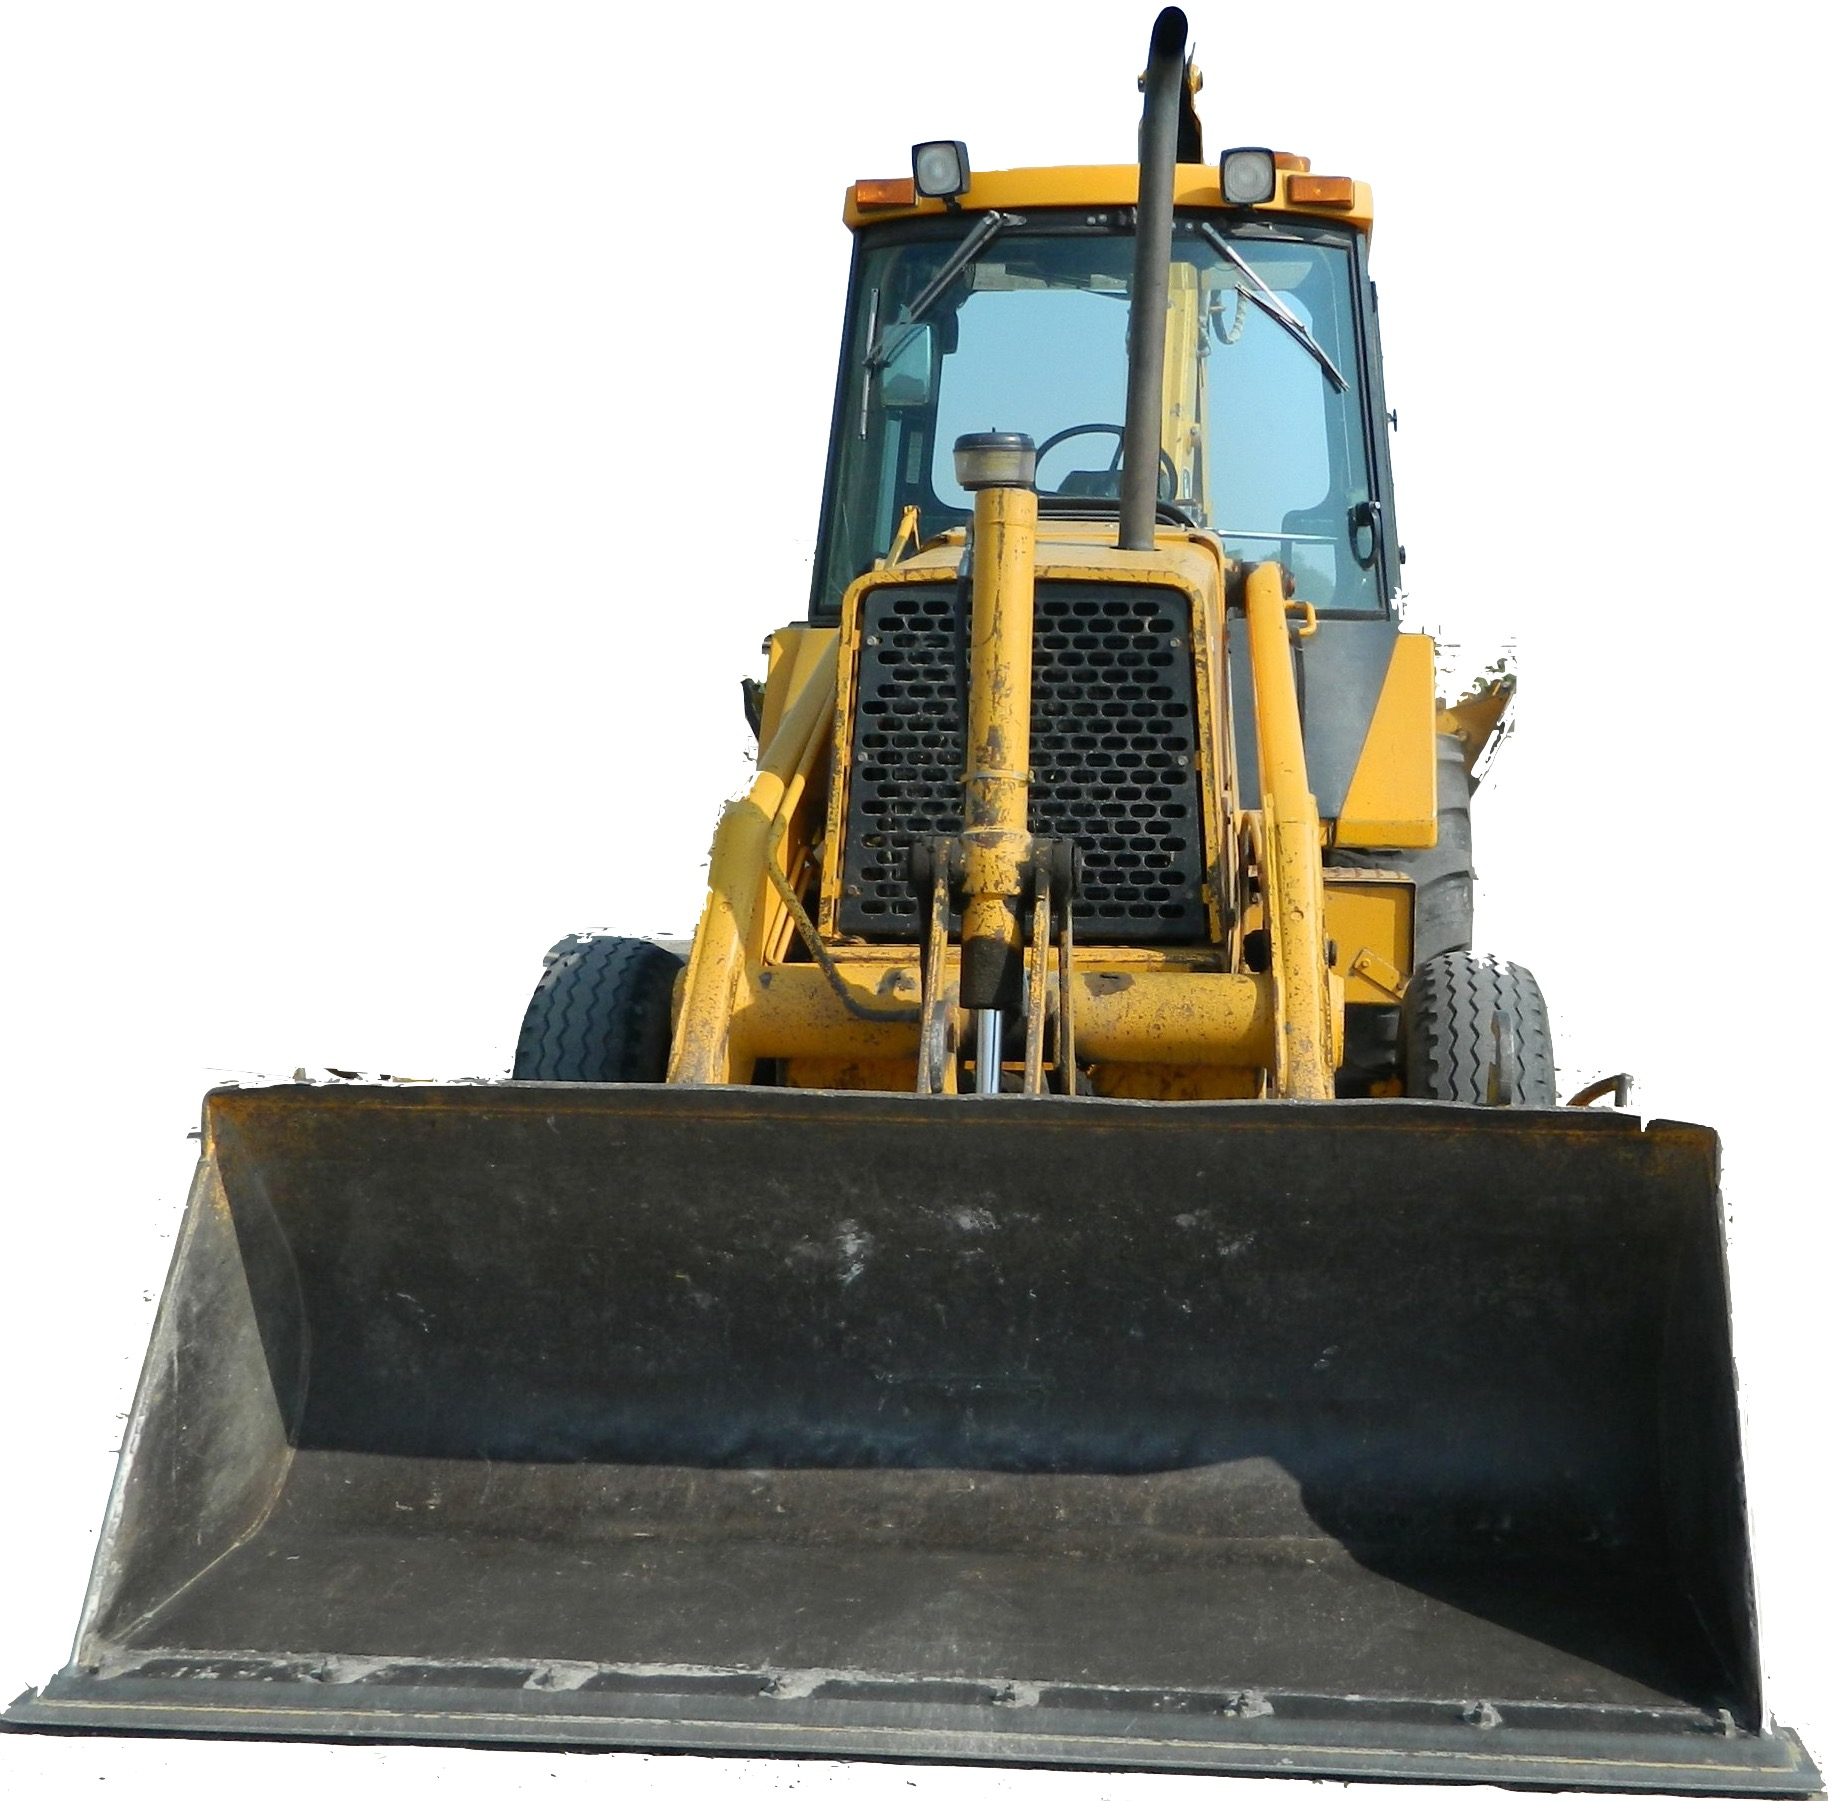 john deere 210c 310c 315c backhoe loader repair. Black Bedroom Furniture Sets. Home Design Ideas